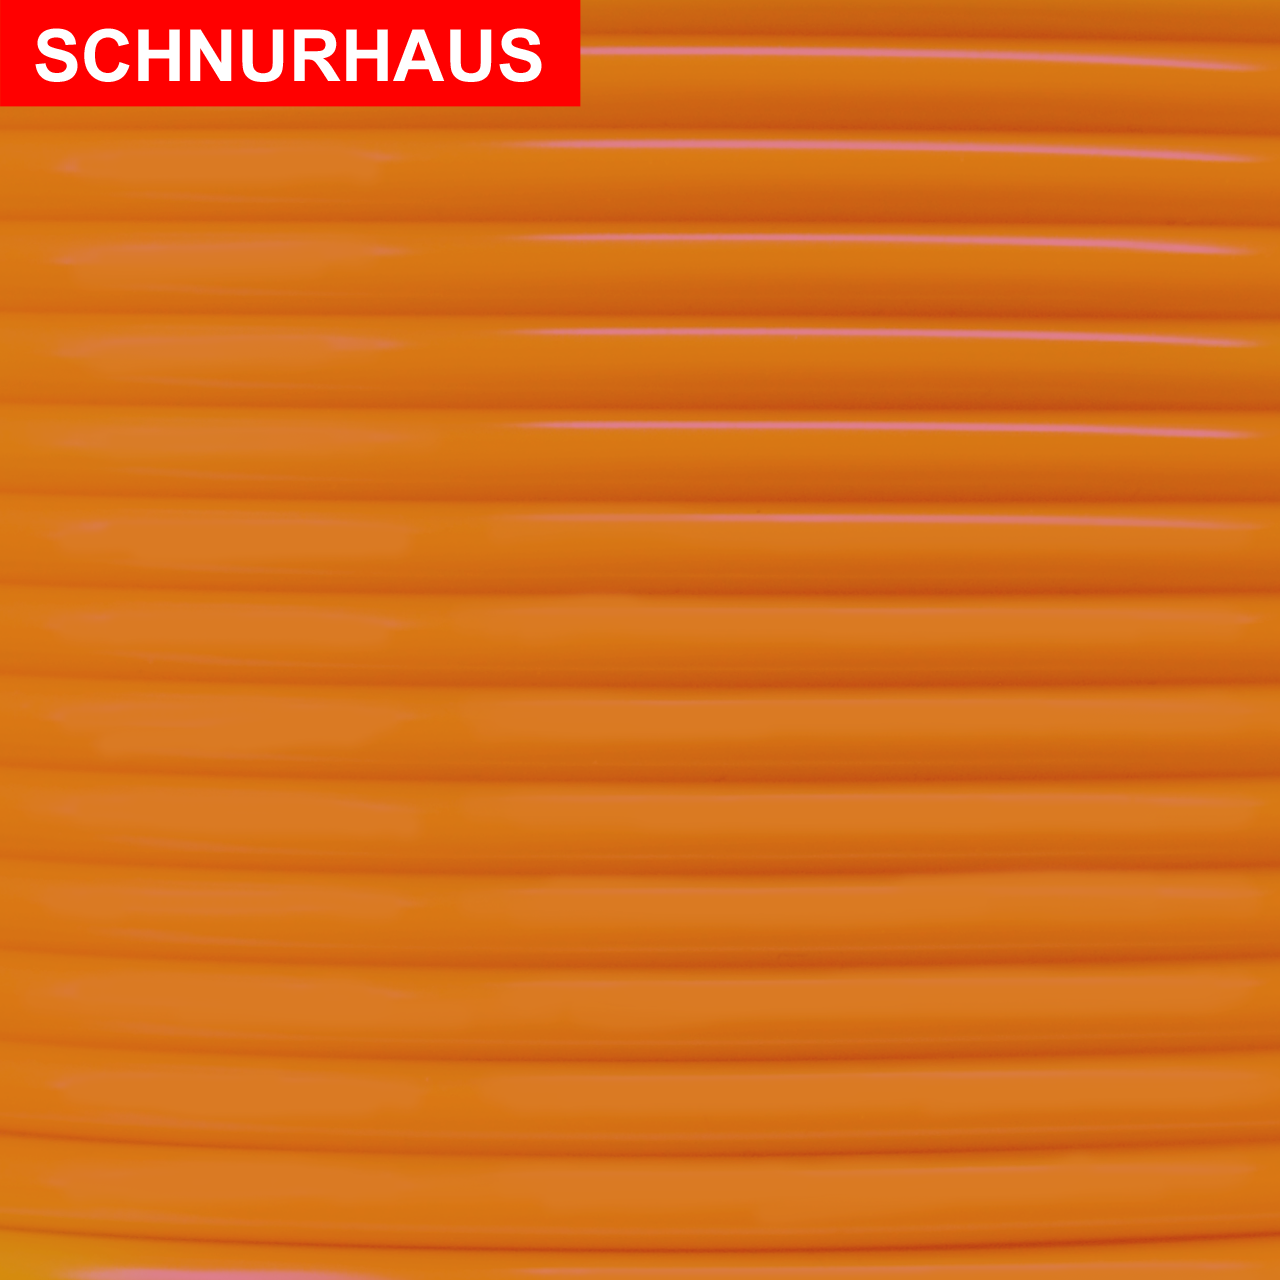 PVC Schnur orange